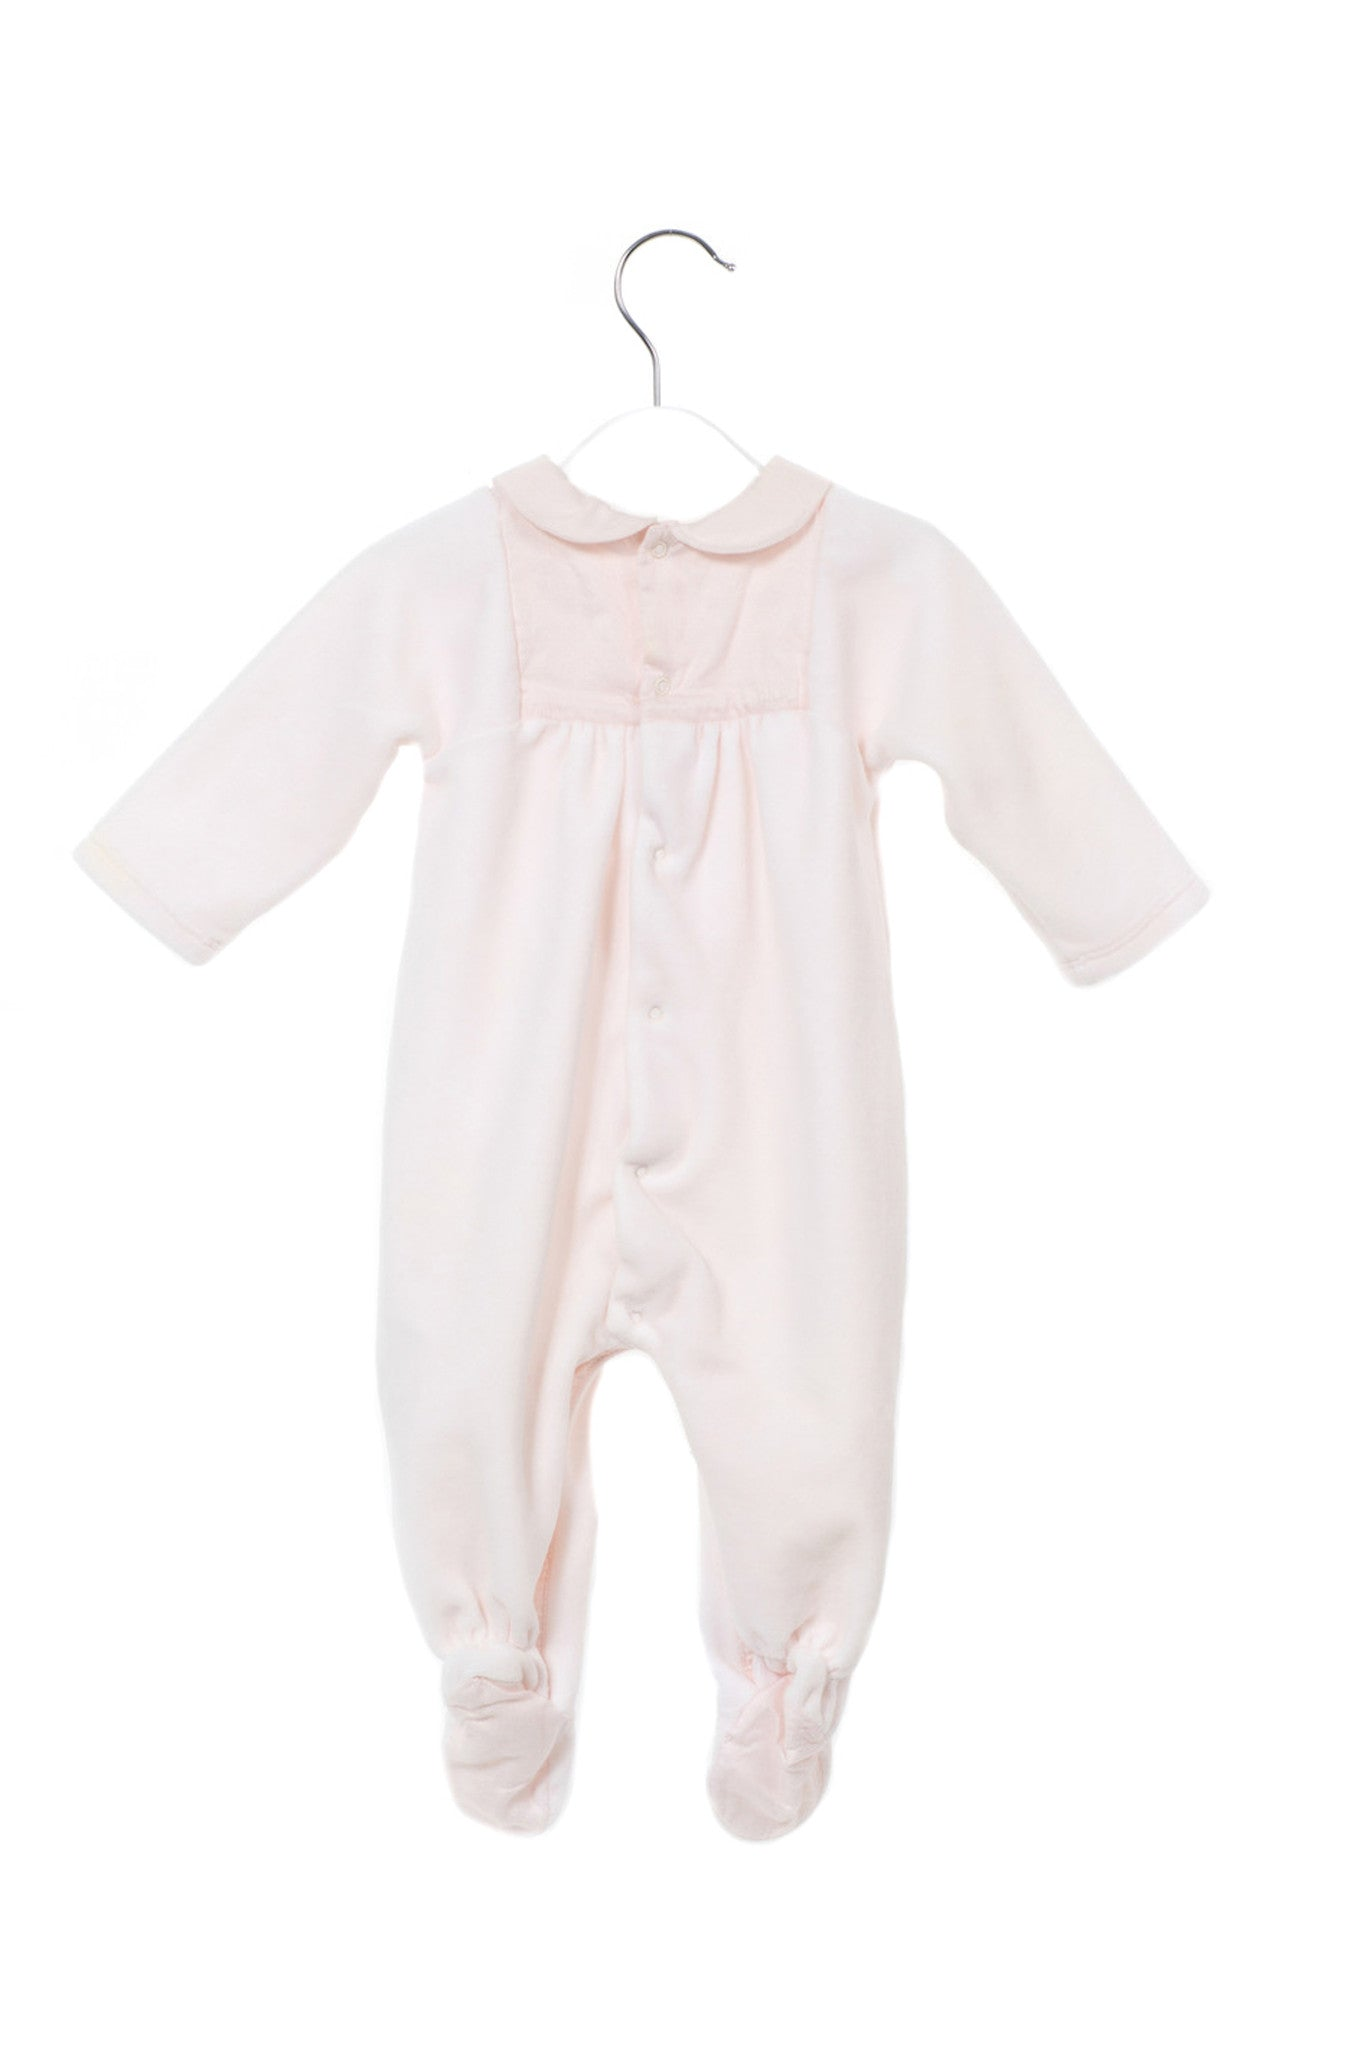 Jumpsuit 3-6M, Chloe at Retykle - Online Baby & Kids Clothing Up to 90% Off